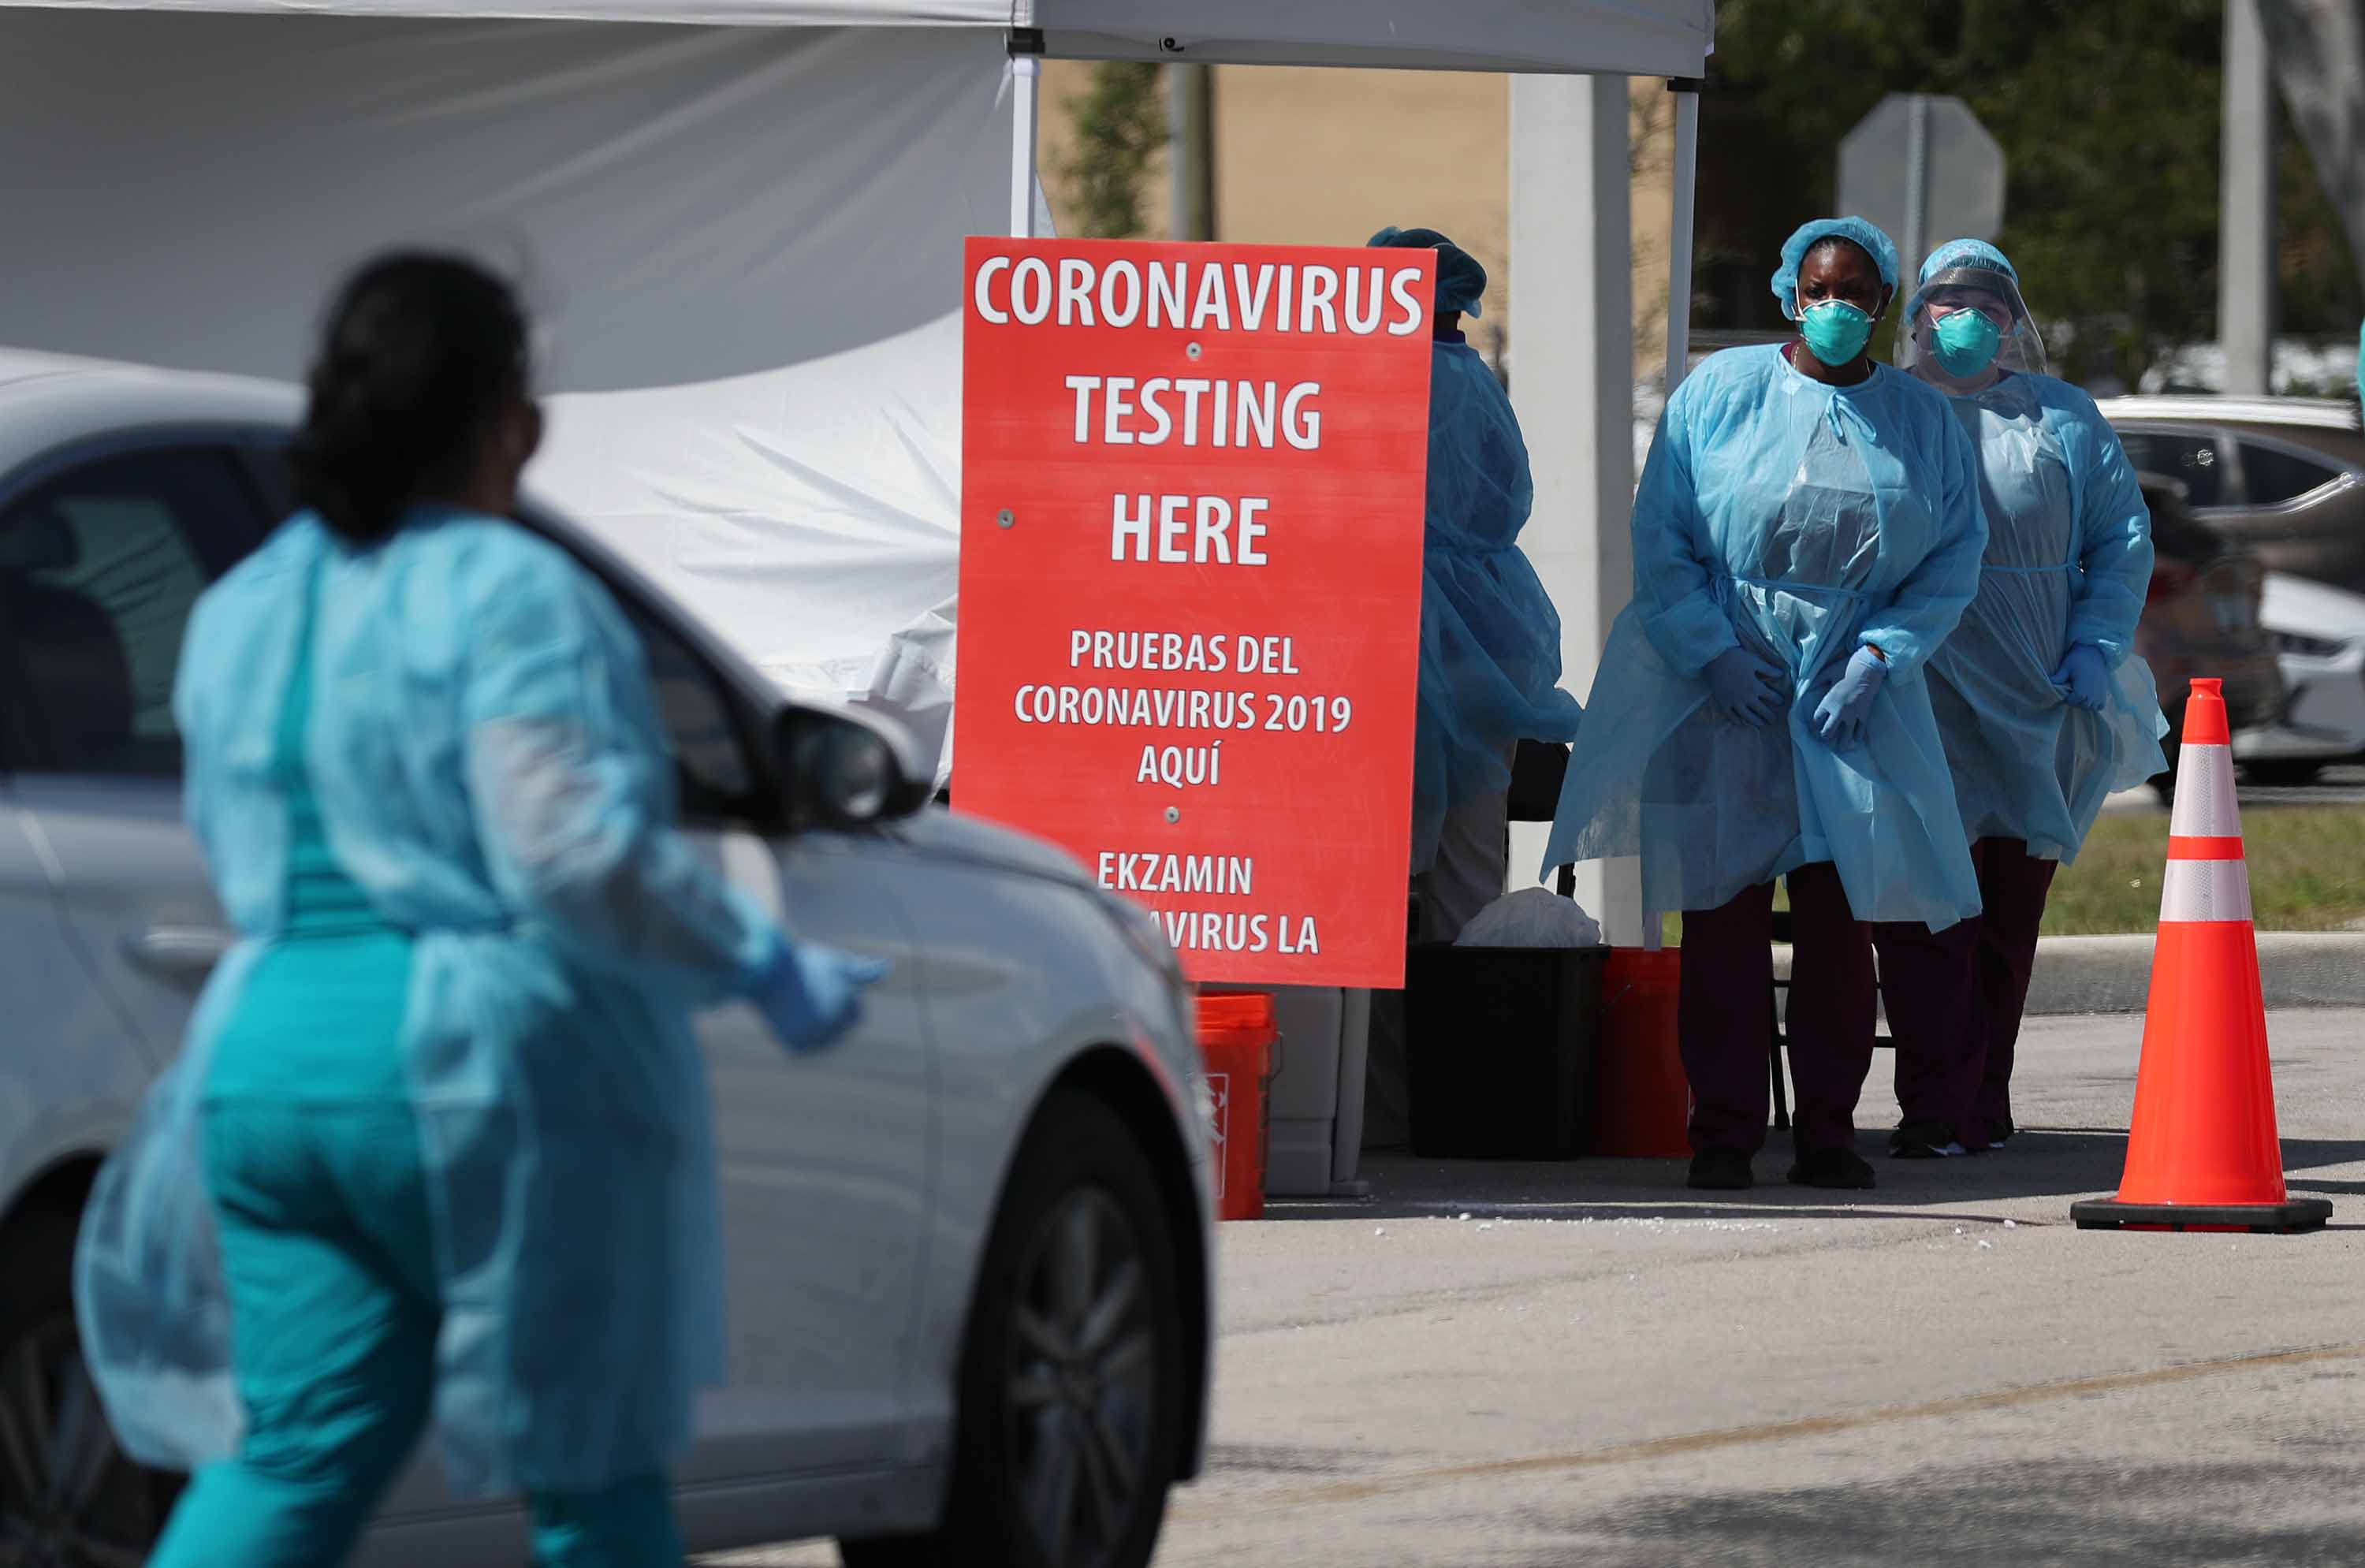 Health care staff prepare to test people for the coronavirus at a health center in Miami, Florida, on March 18.